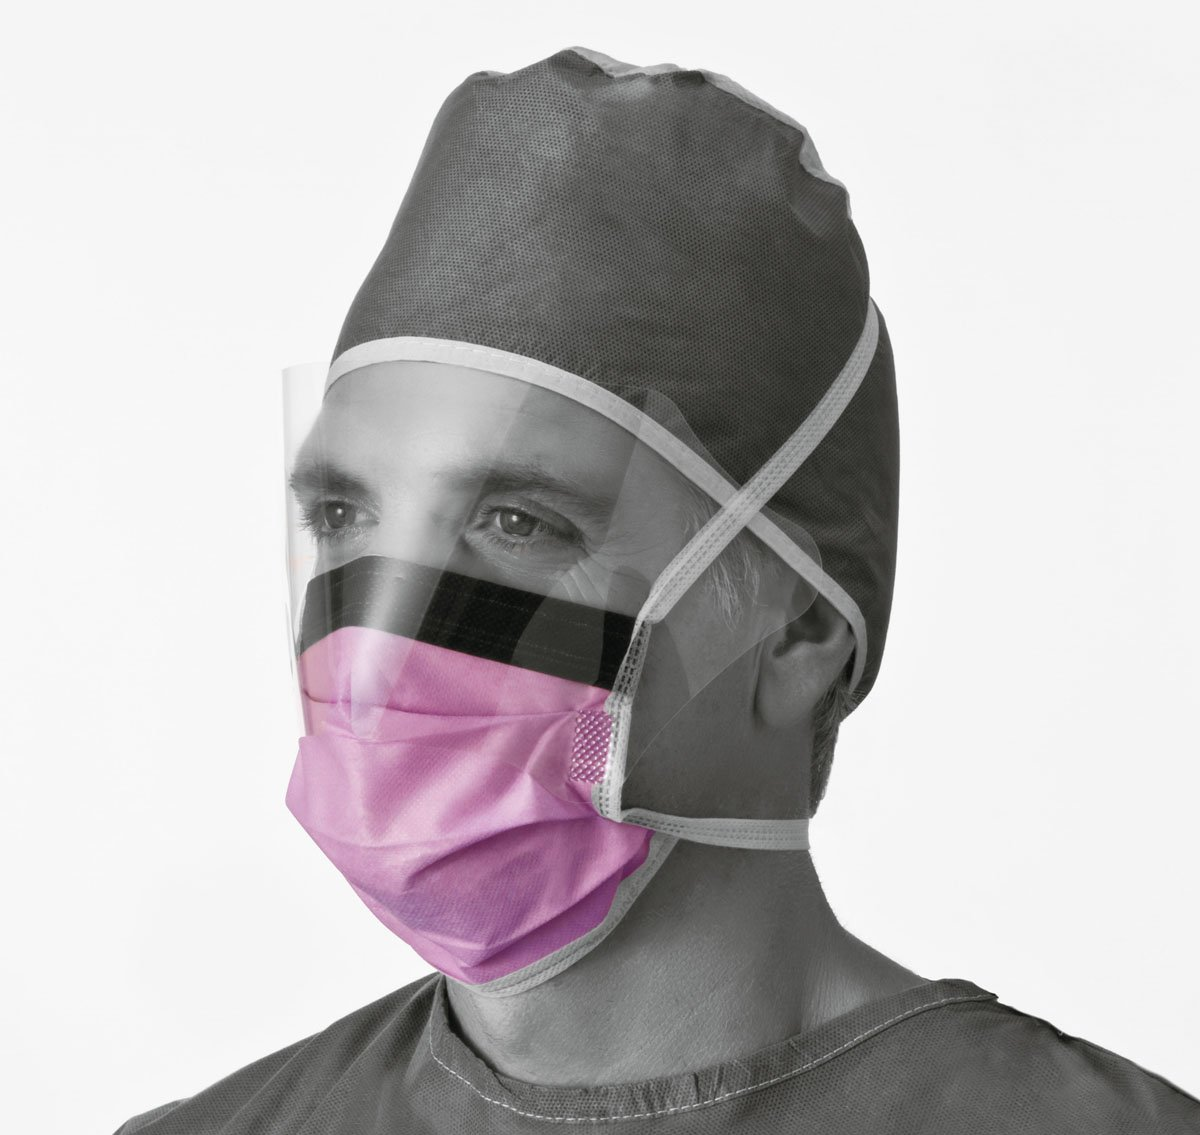 Medline NON27410 Surgical Face Masks with Eyeshield, Fluid-Resistant, Anti-Fog, Latex Free, Purple (Pack of 100)